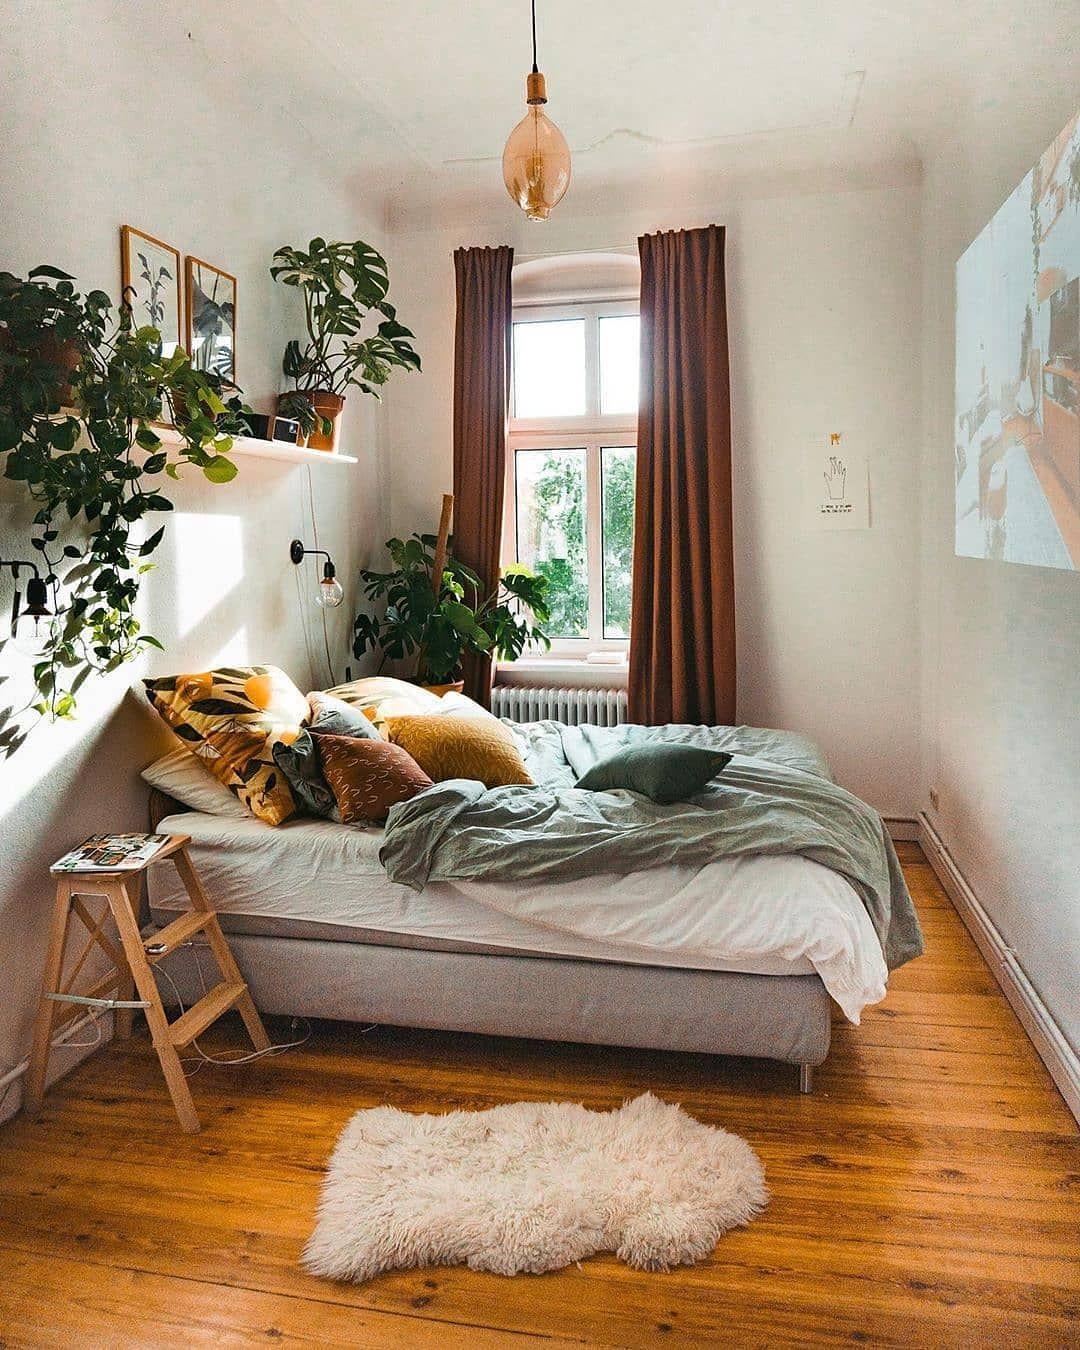 Olivra Homedecor On Instagram Urban Bedroom Style Tag A Friend To Share Some Bedroom Inspiration Room Ideas Bedroom Urban Bedroom Room Decor Bedroom